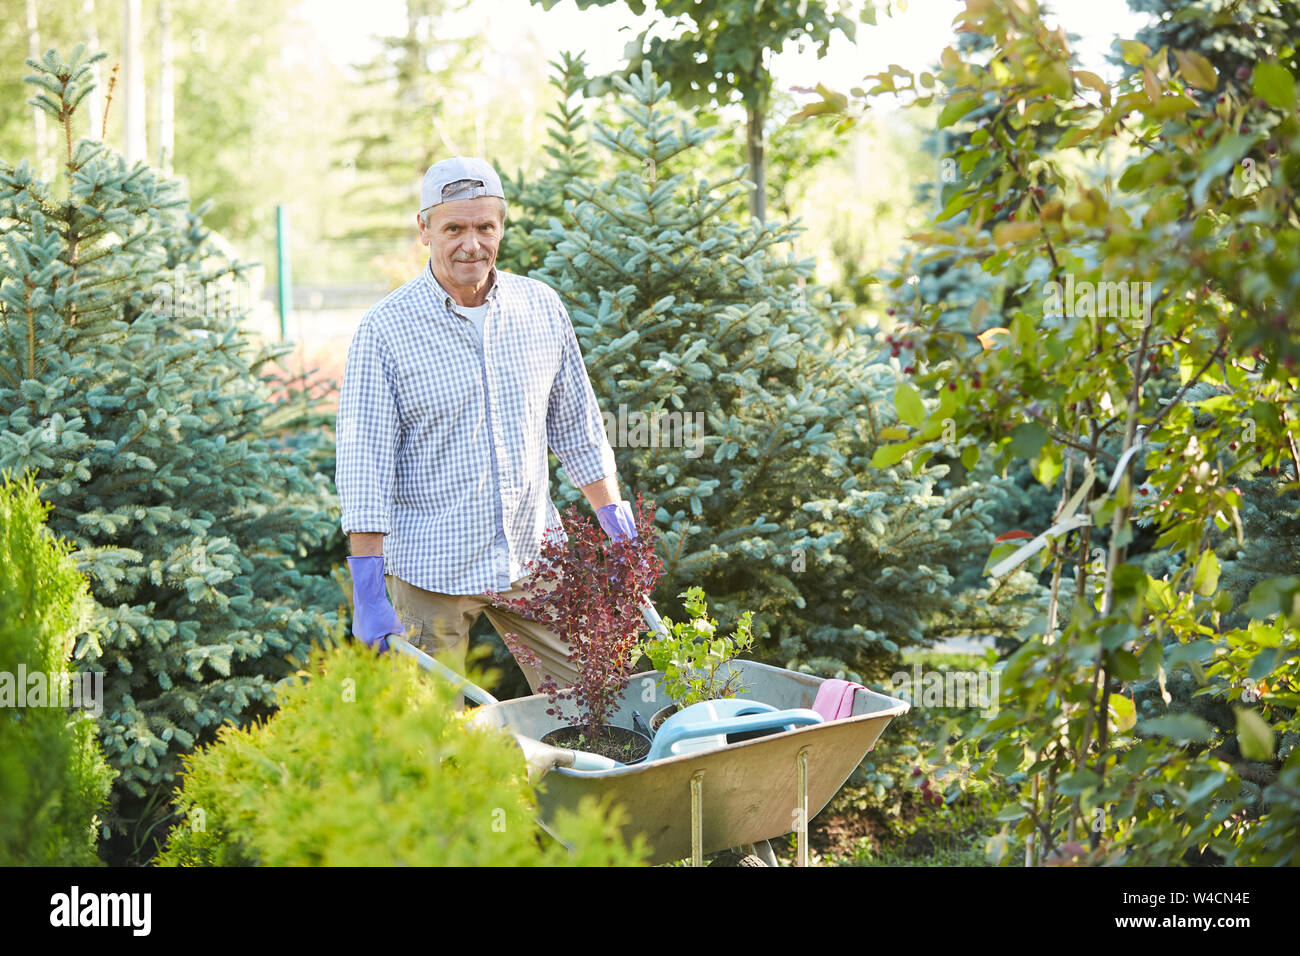 Portrait of mature man pulling cart while working in garden outdoors, copy space Stock Photo